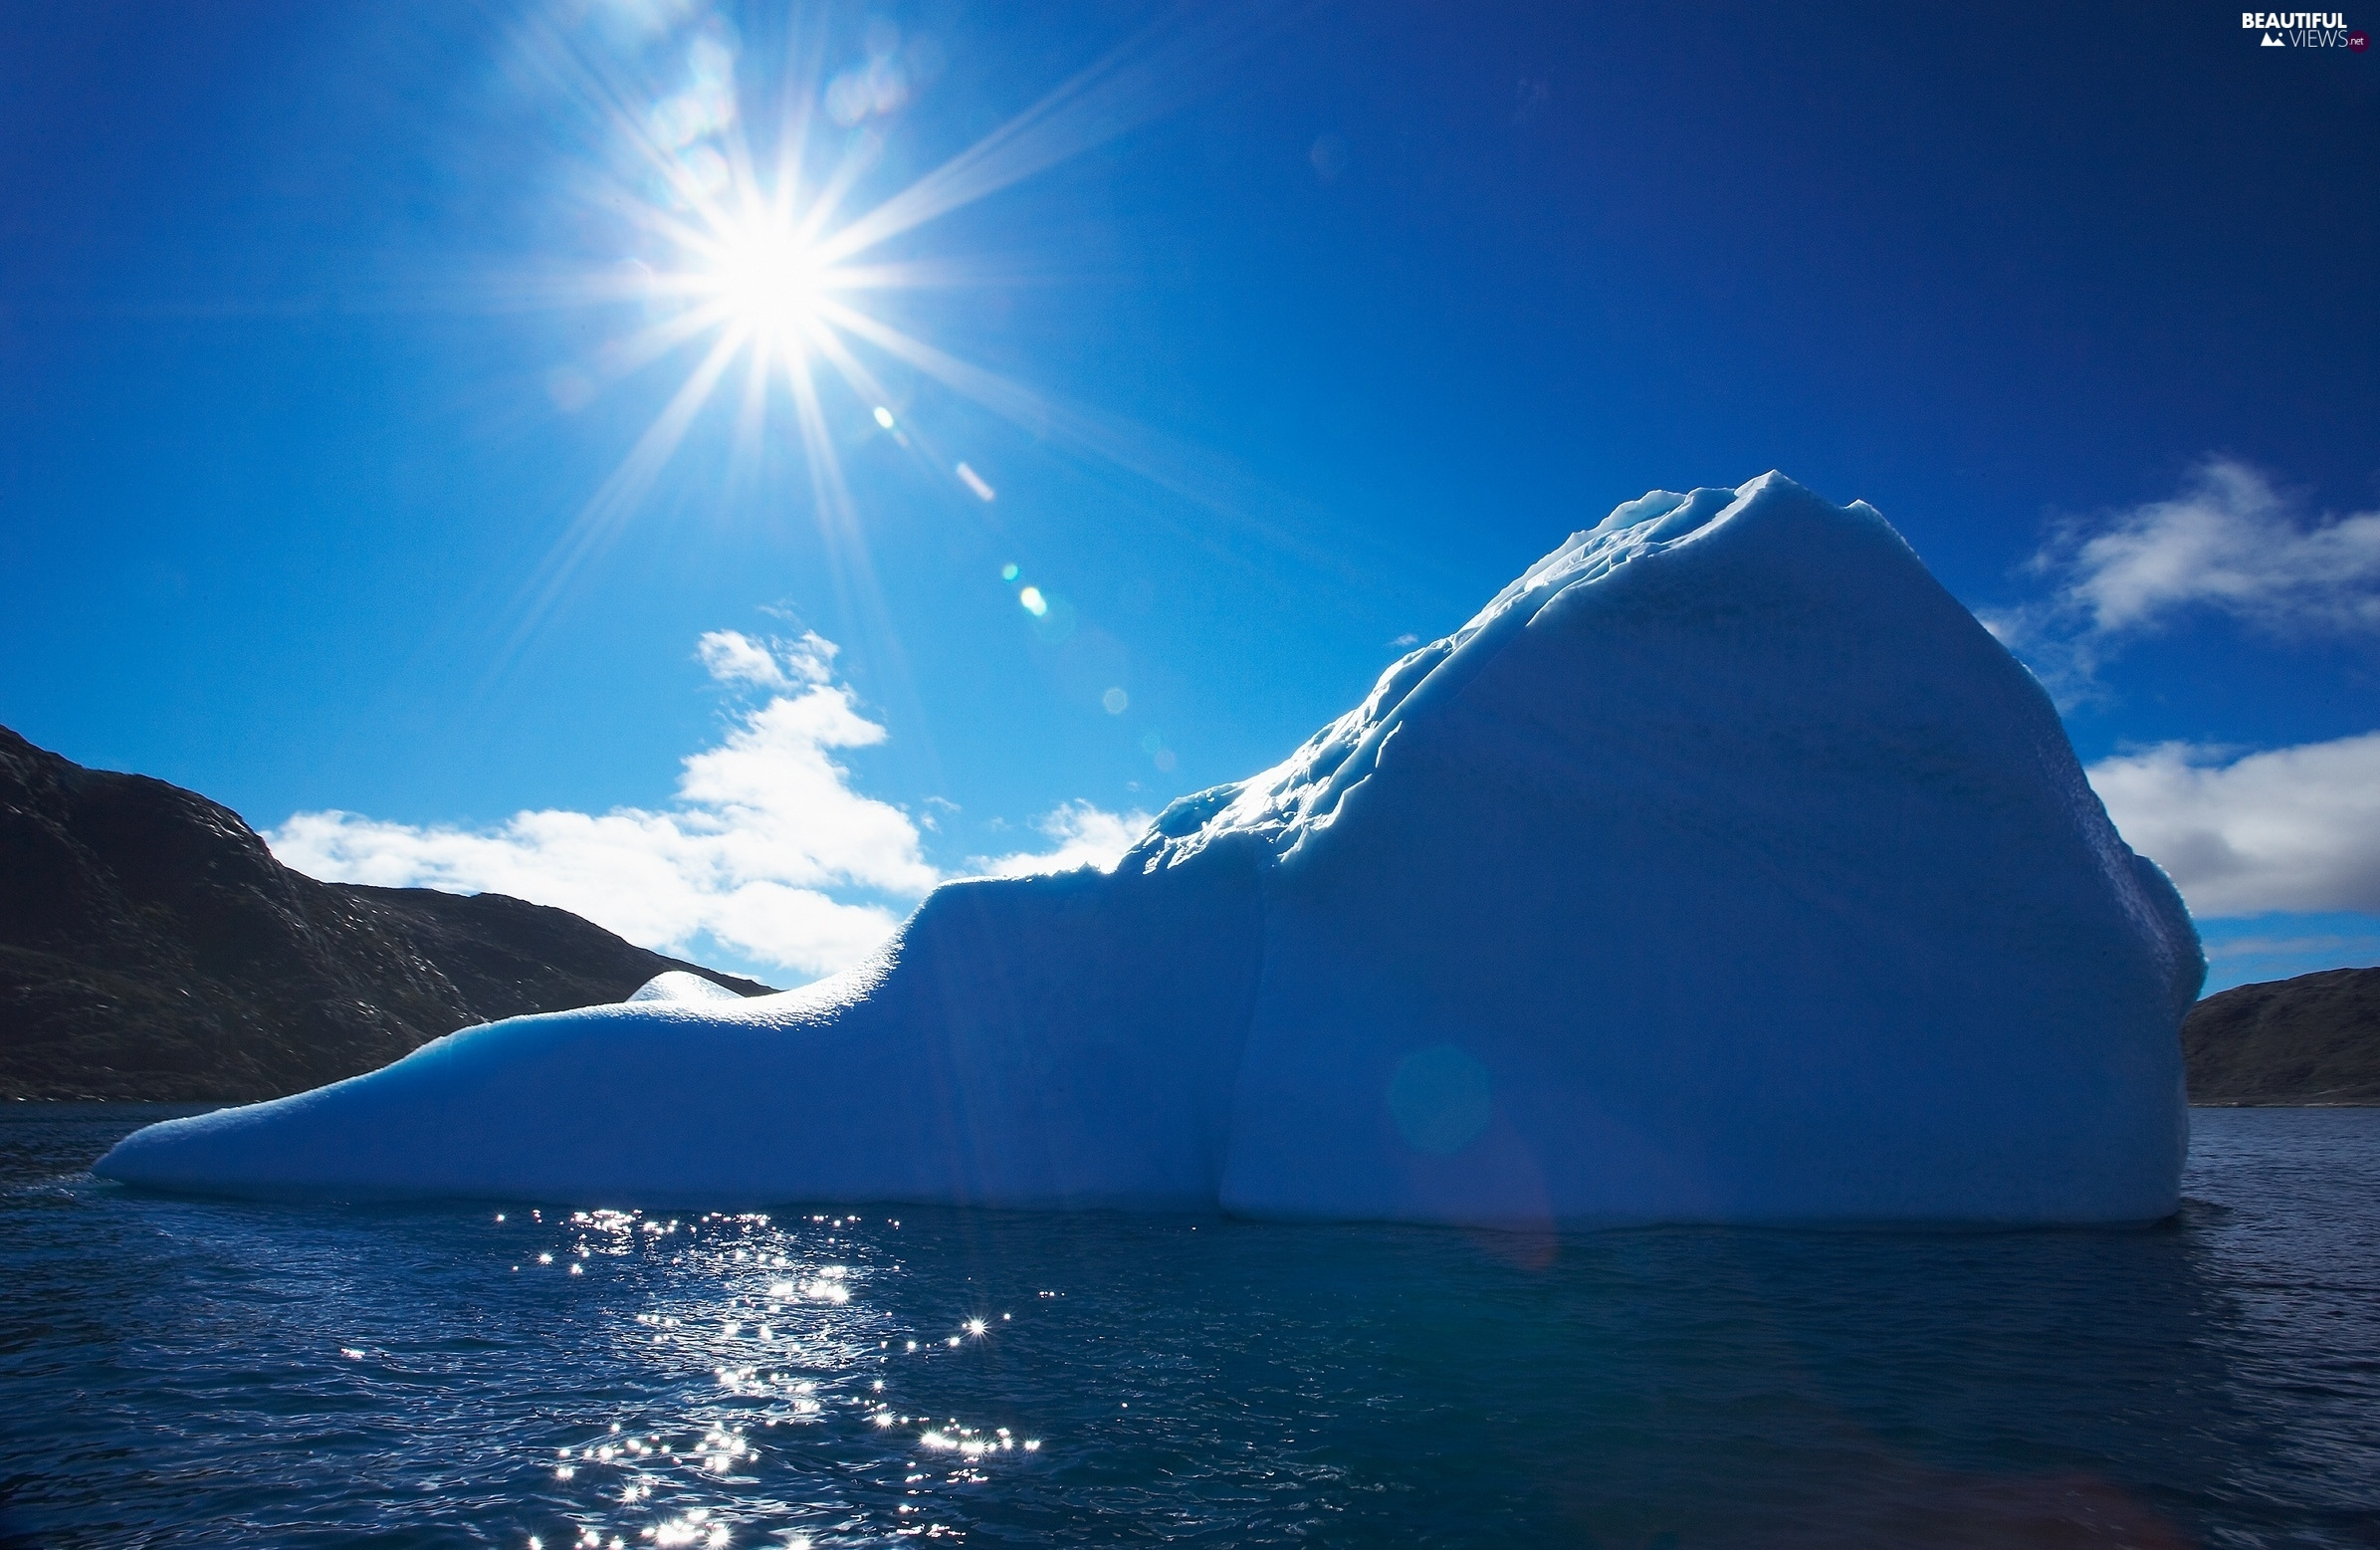 mountains, sun, sea, Ice